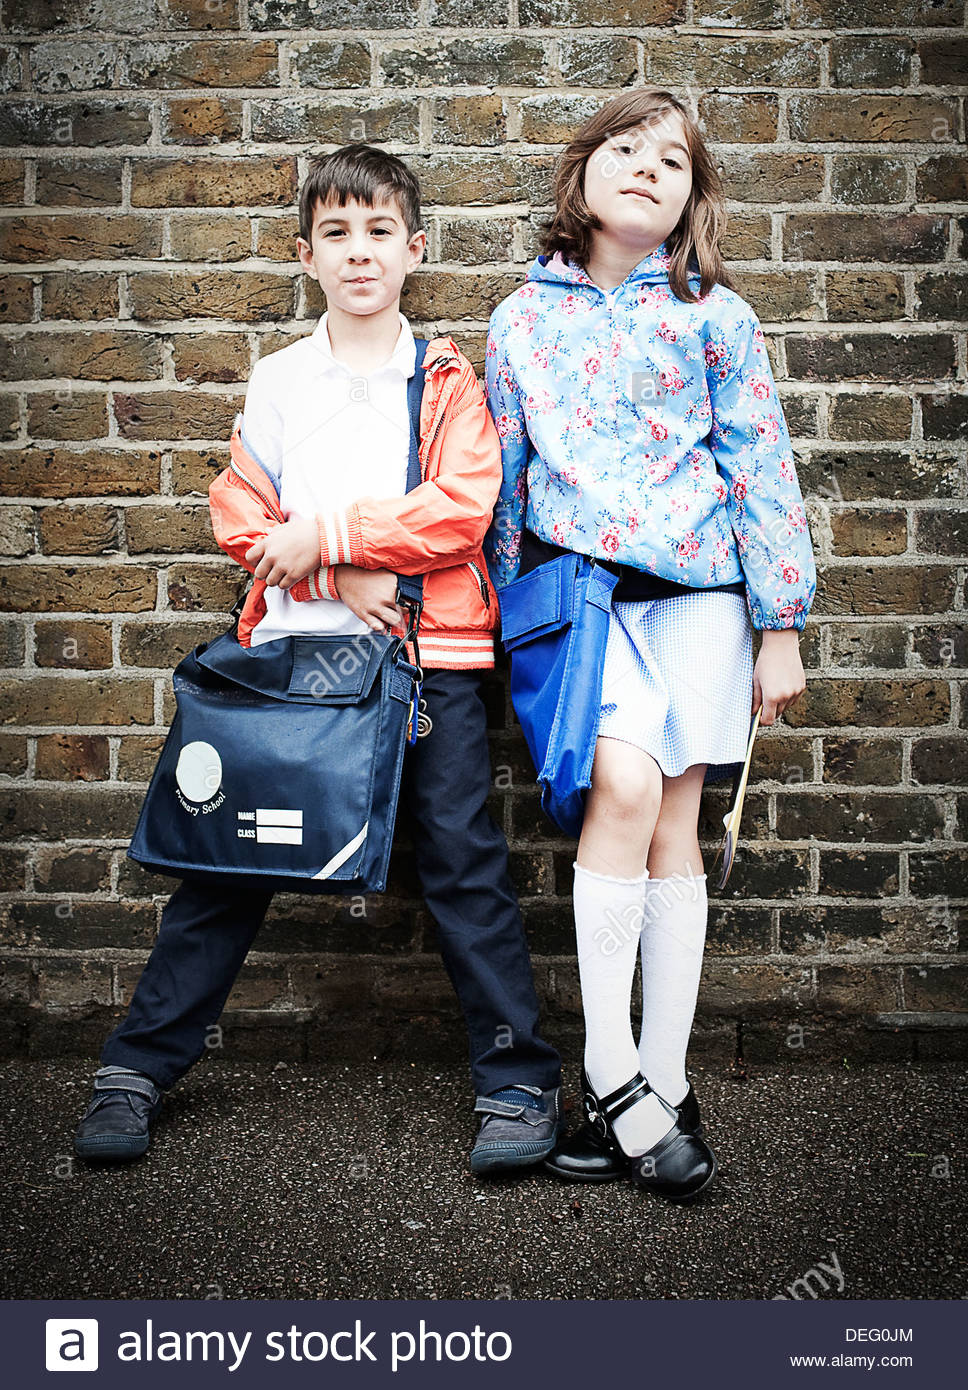 School bag for year 7 - Boy And Girl Standing In Front Of Brick Wall With School Bags Stock Image